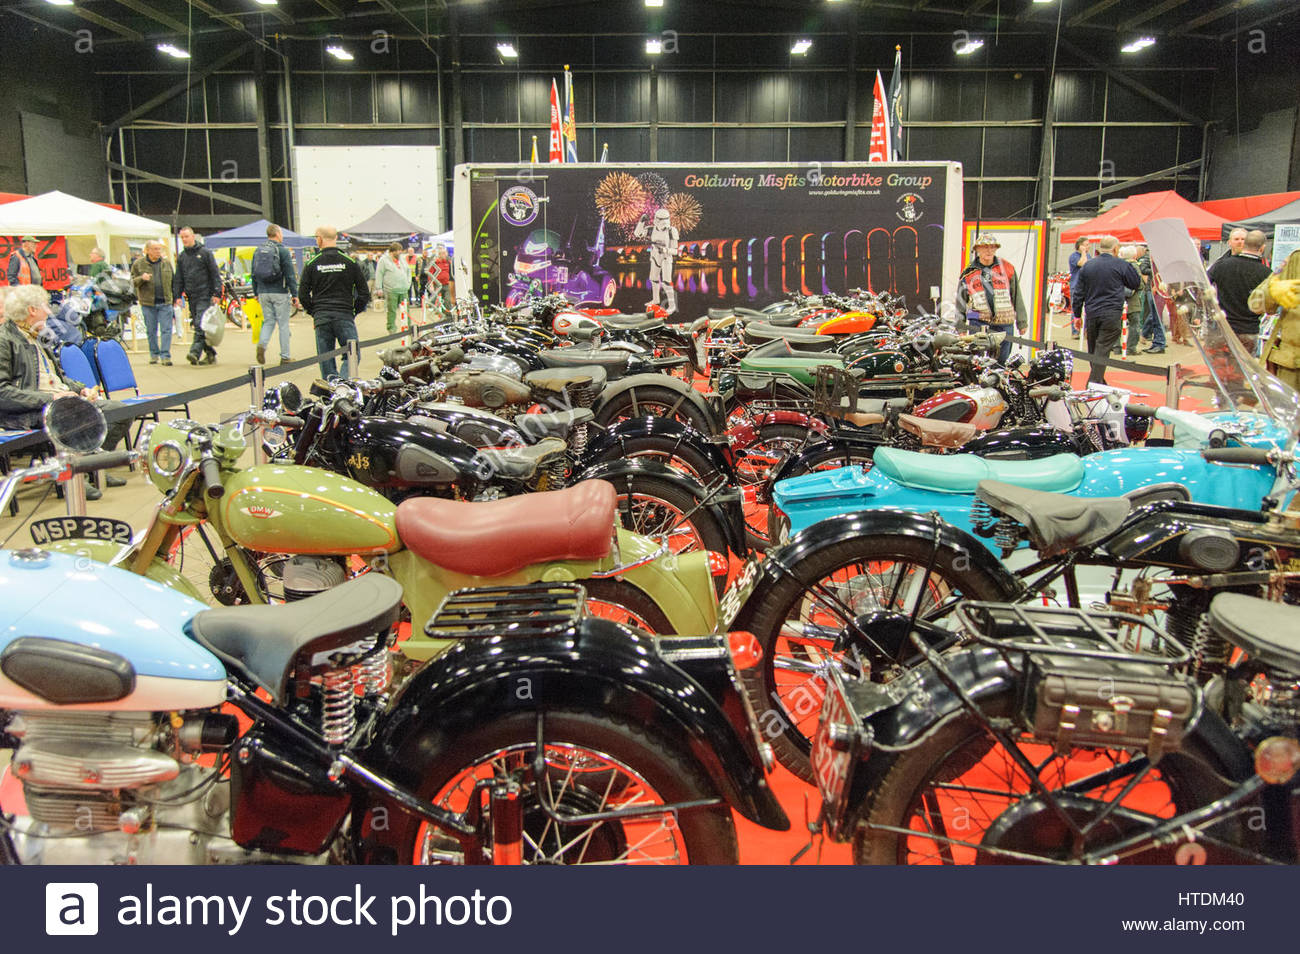 Edinburgh, UK. 11 March, 2017. Part of the classic bike display at the Carole Nash MCN Scottish Motorcycle Show. - Stock Image